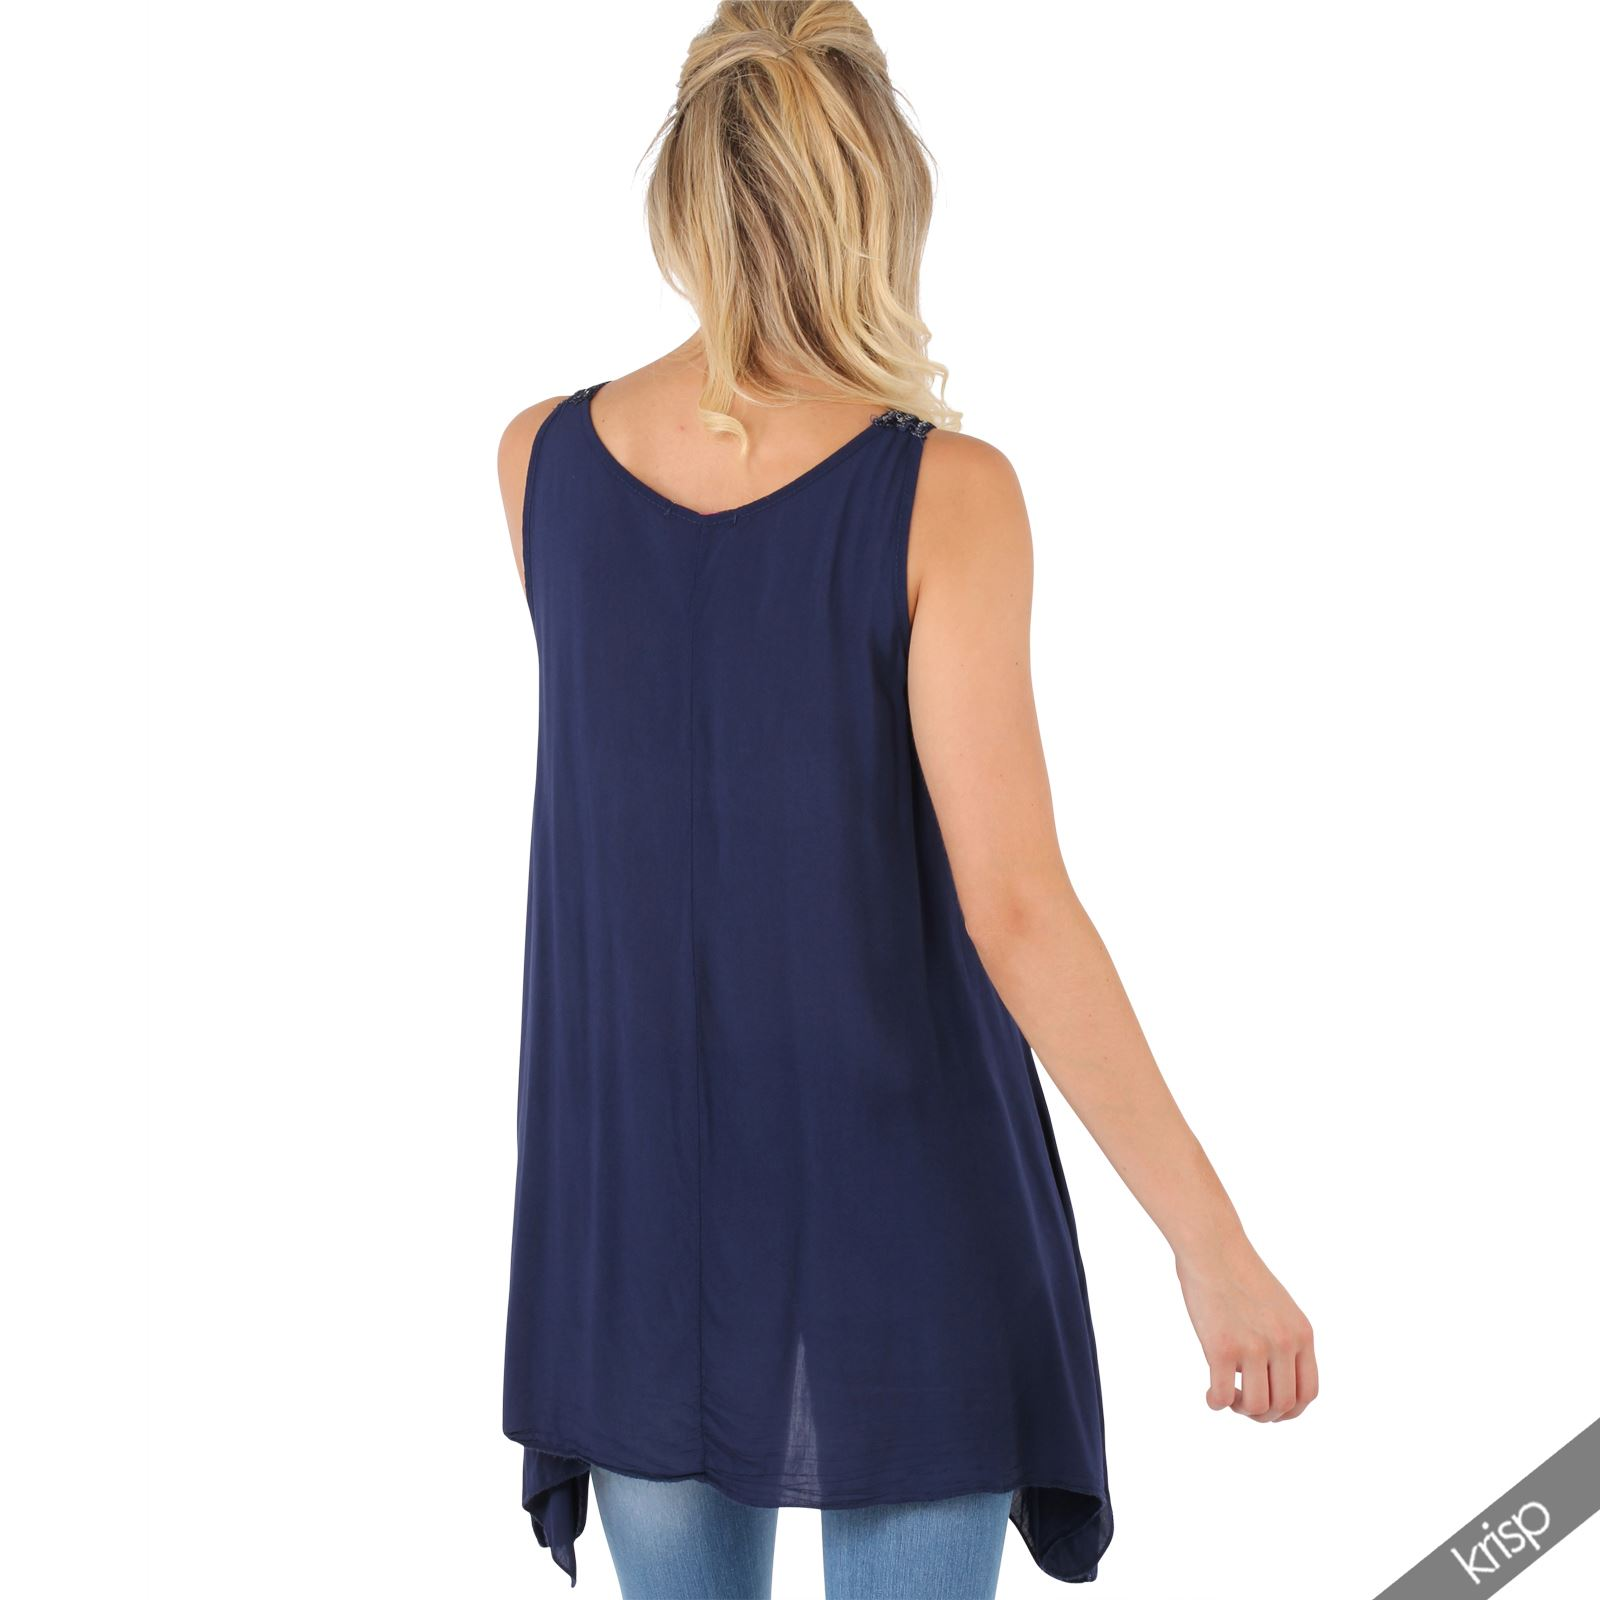 Shop Online at urgut.ga for the Latest Womens Long Sleeve Shirts, Tunics, Blouses, Halter Tops & More Womens Tops. FREE SHIPPING AVAILABLE!